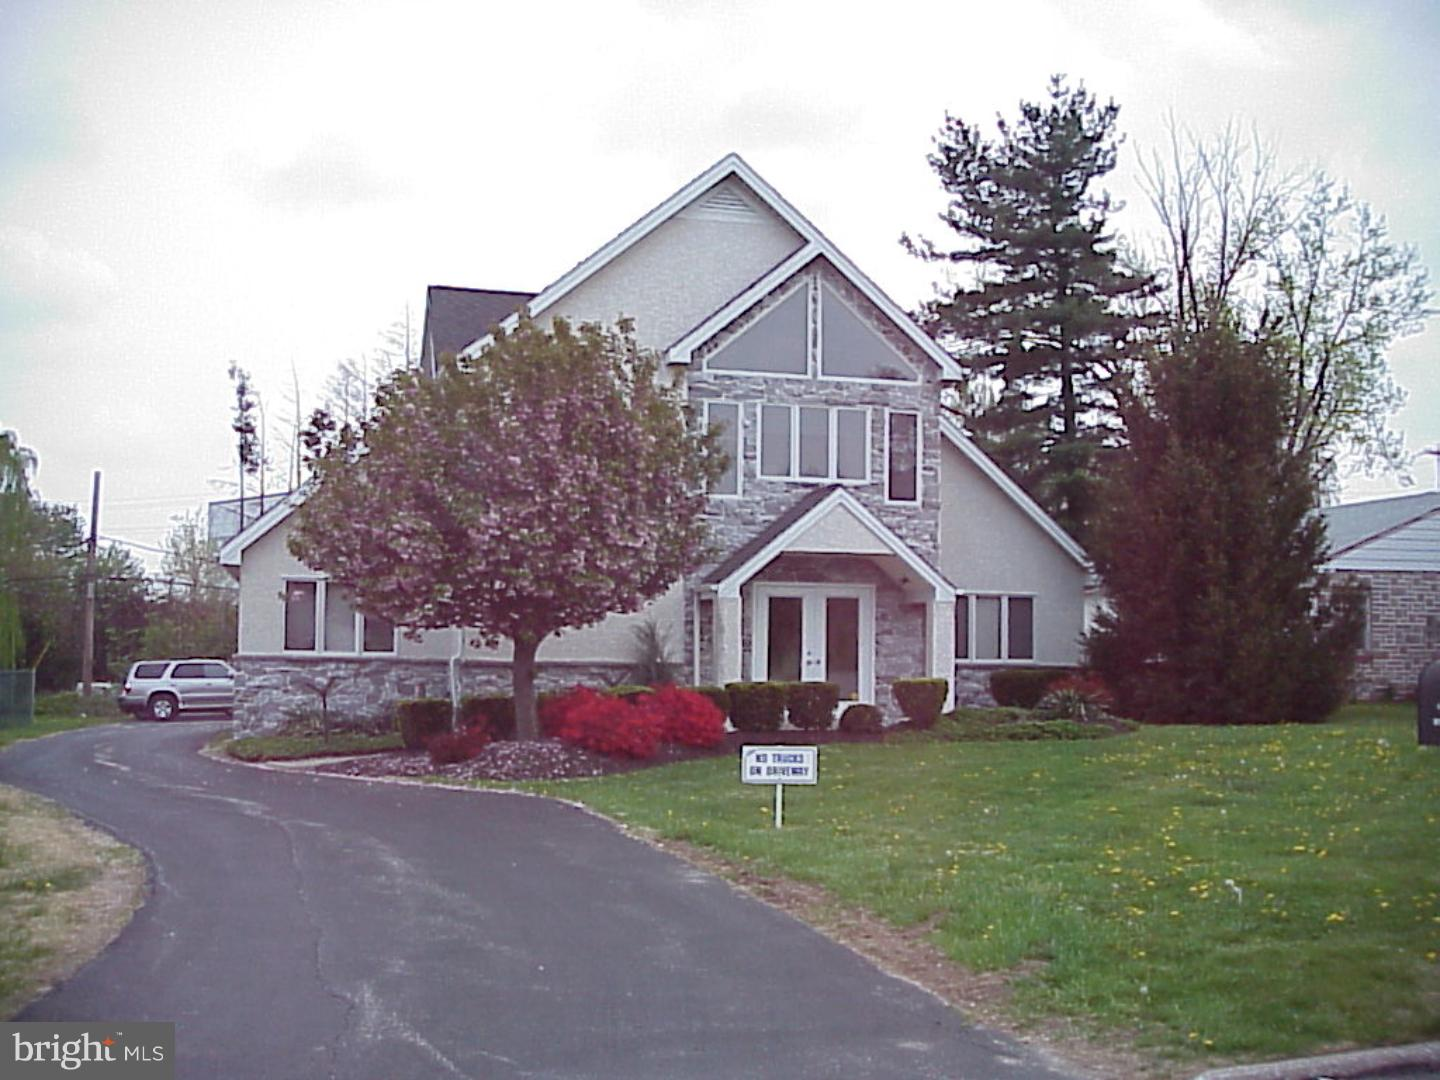 133 IVY LANE, KING OF PRUSSIA, PA 19406